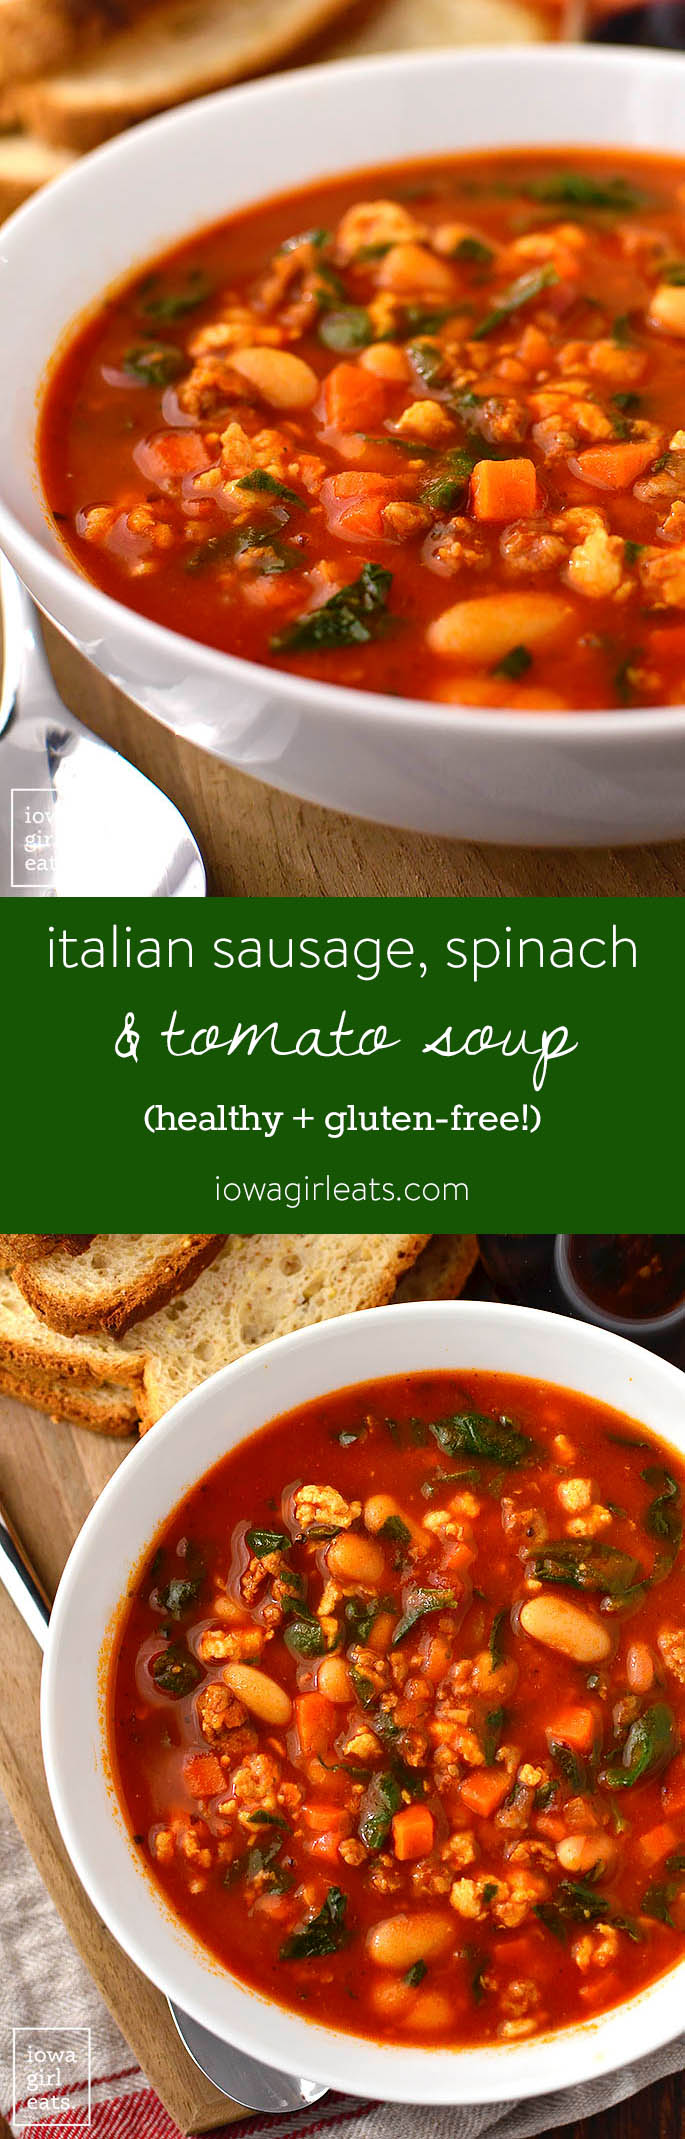 Italian Sausage, Spinach and Tomato Soup is a gluten-free soup recipe full of healthy, hearty ingredients. Just 30 minutes from fridge to table! | iowagirleats.com